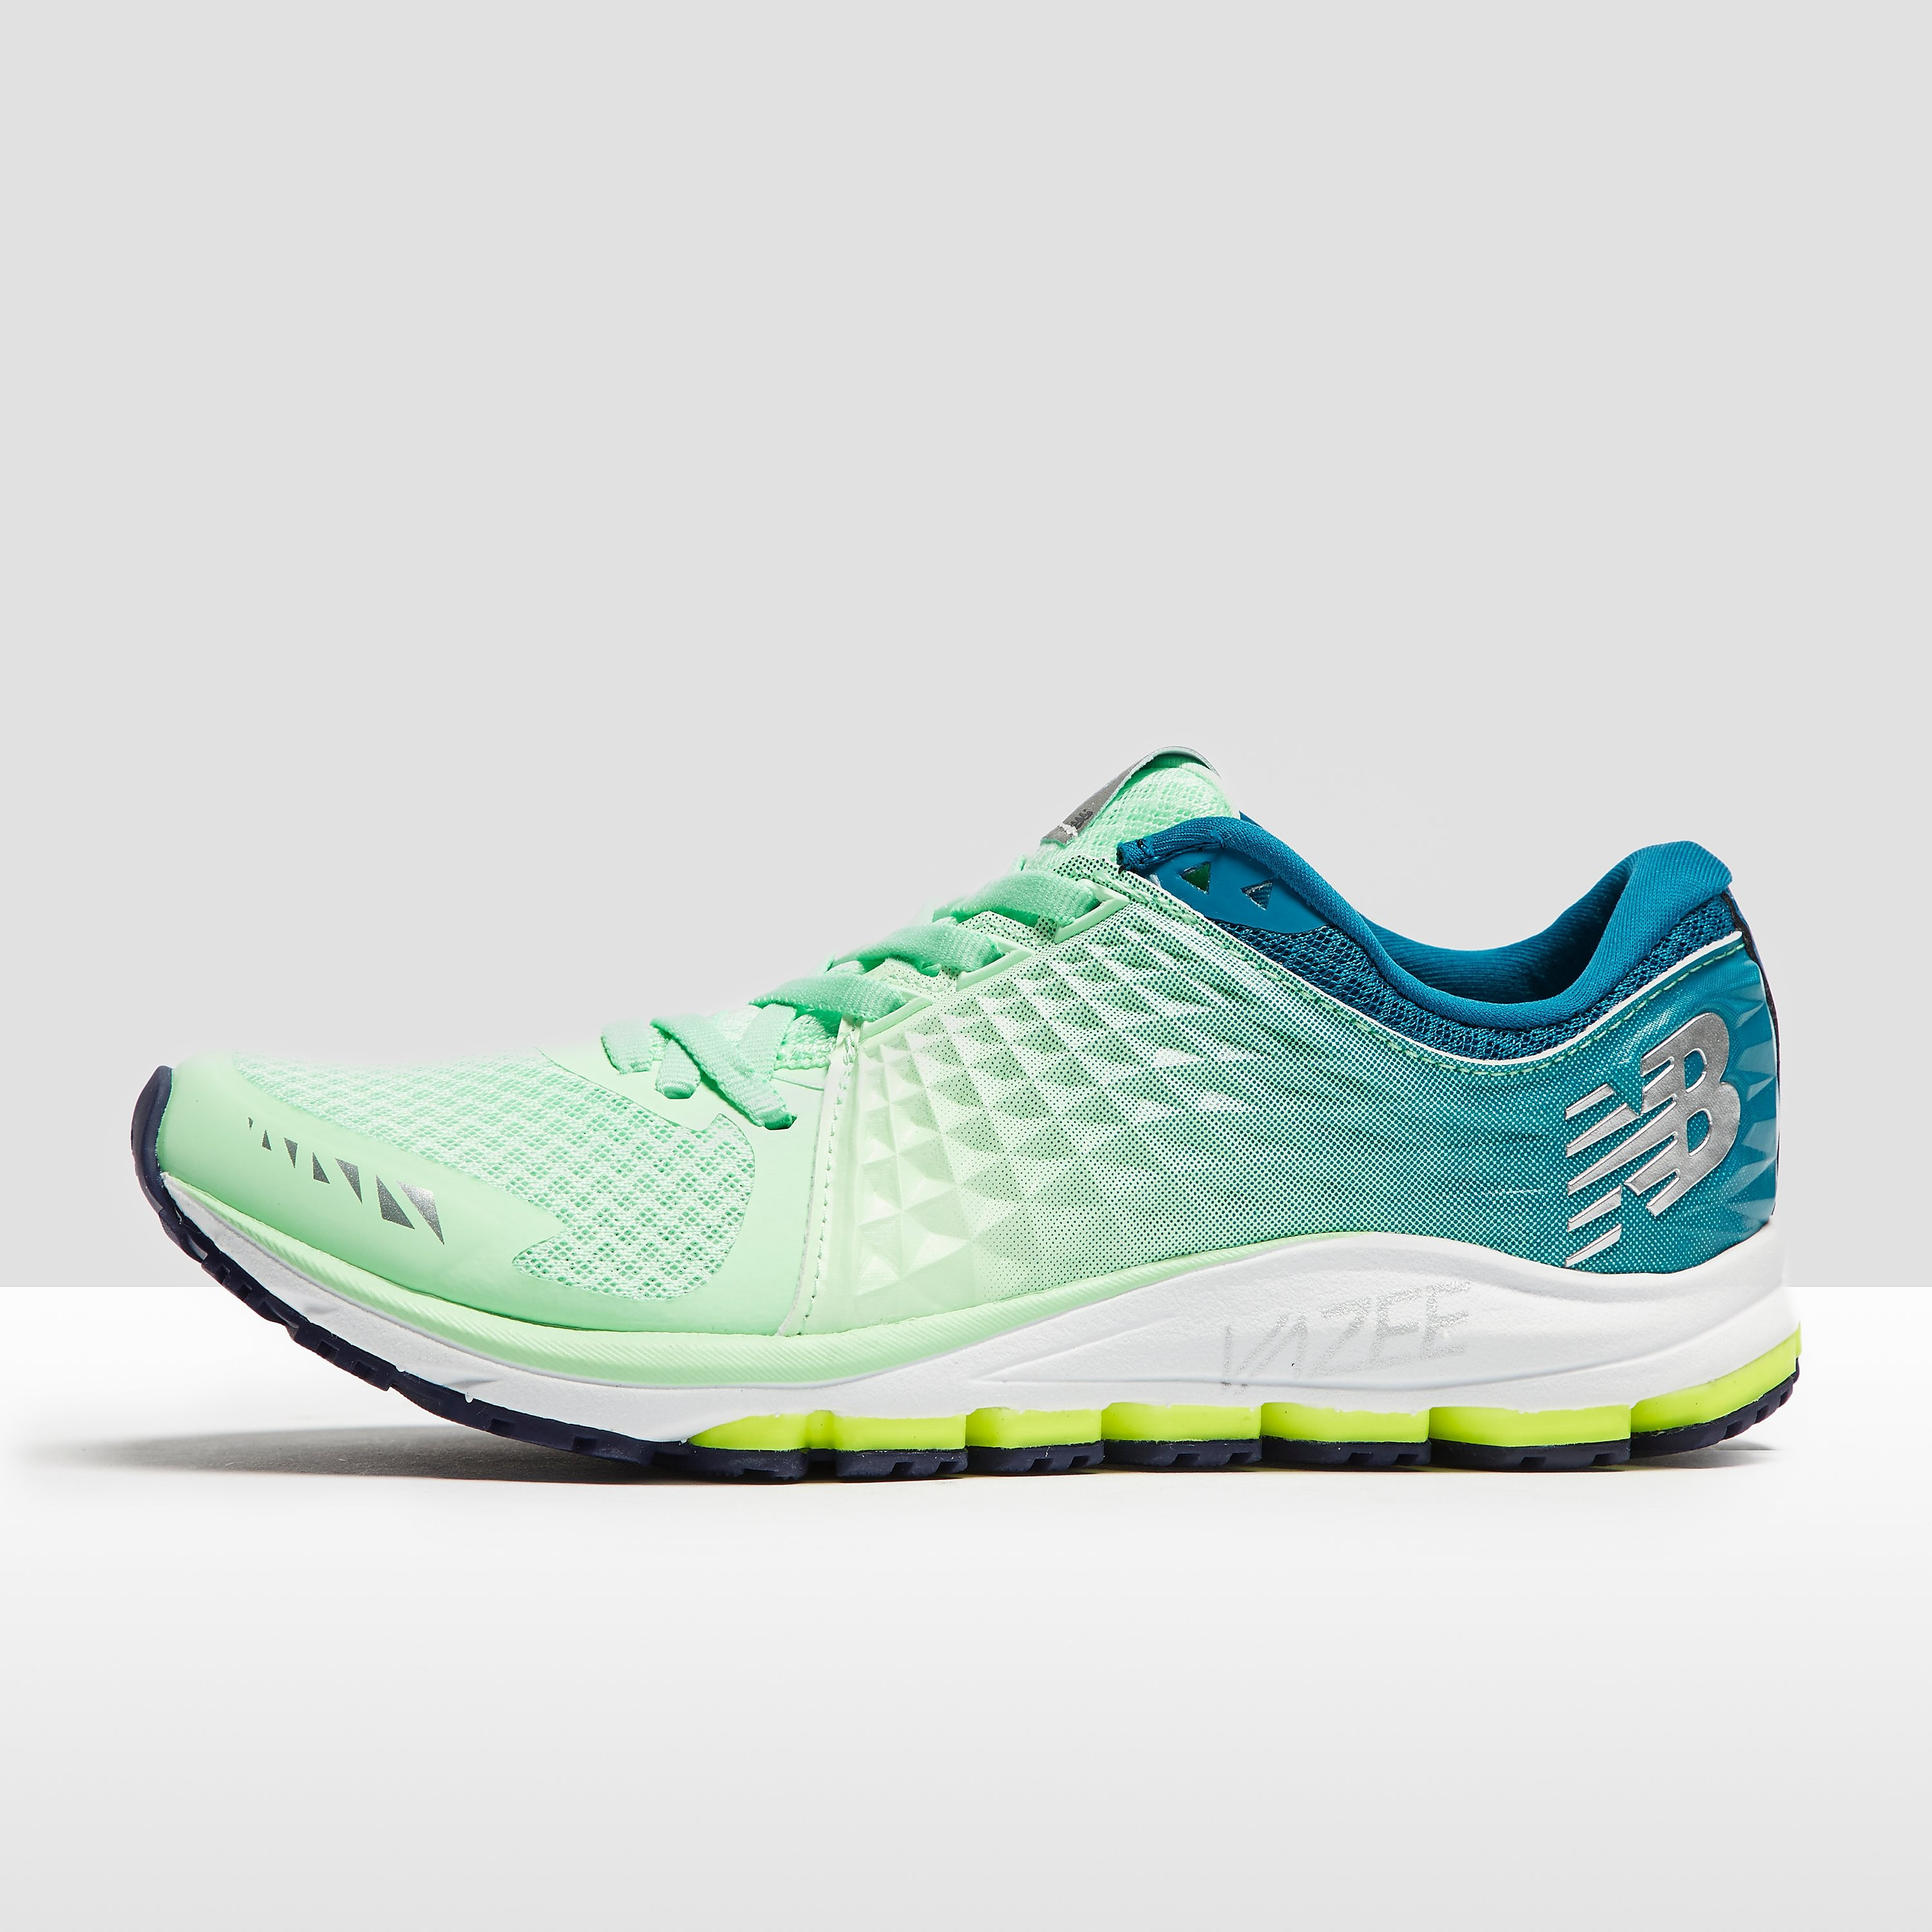 New Balance Vazee 2090 Women's Shoes Image